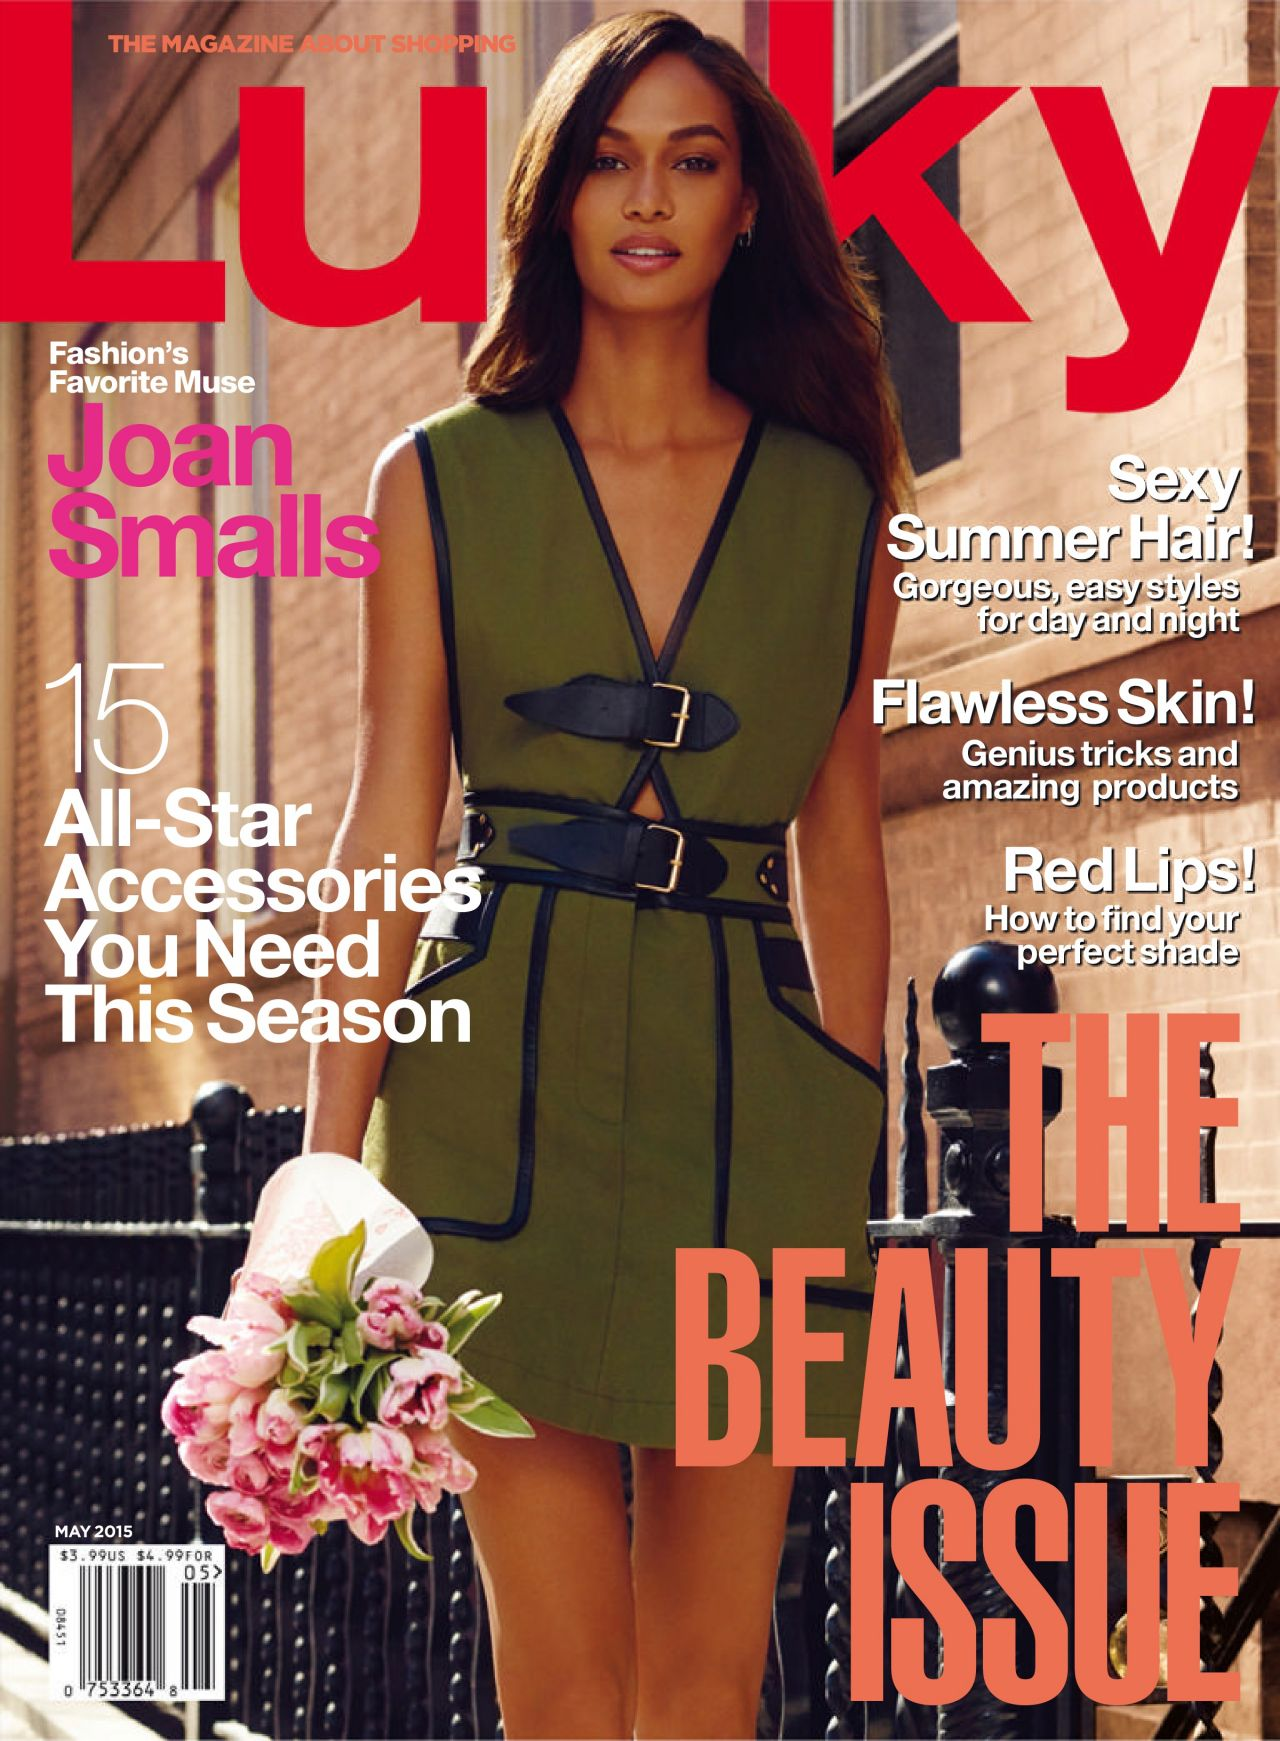 Lucky Magazine May 11: Lucky Magazine May 2015 Issue